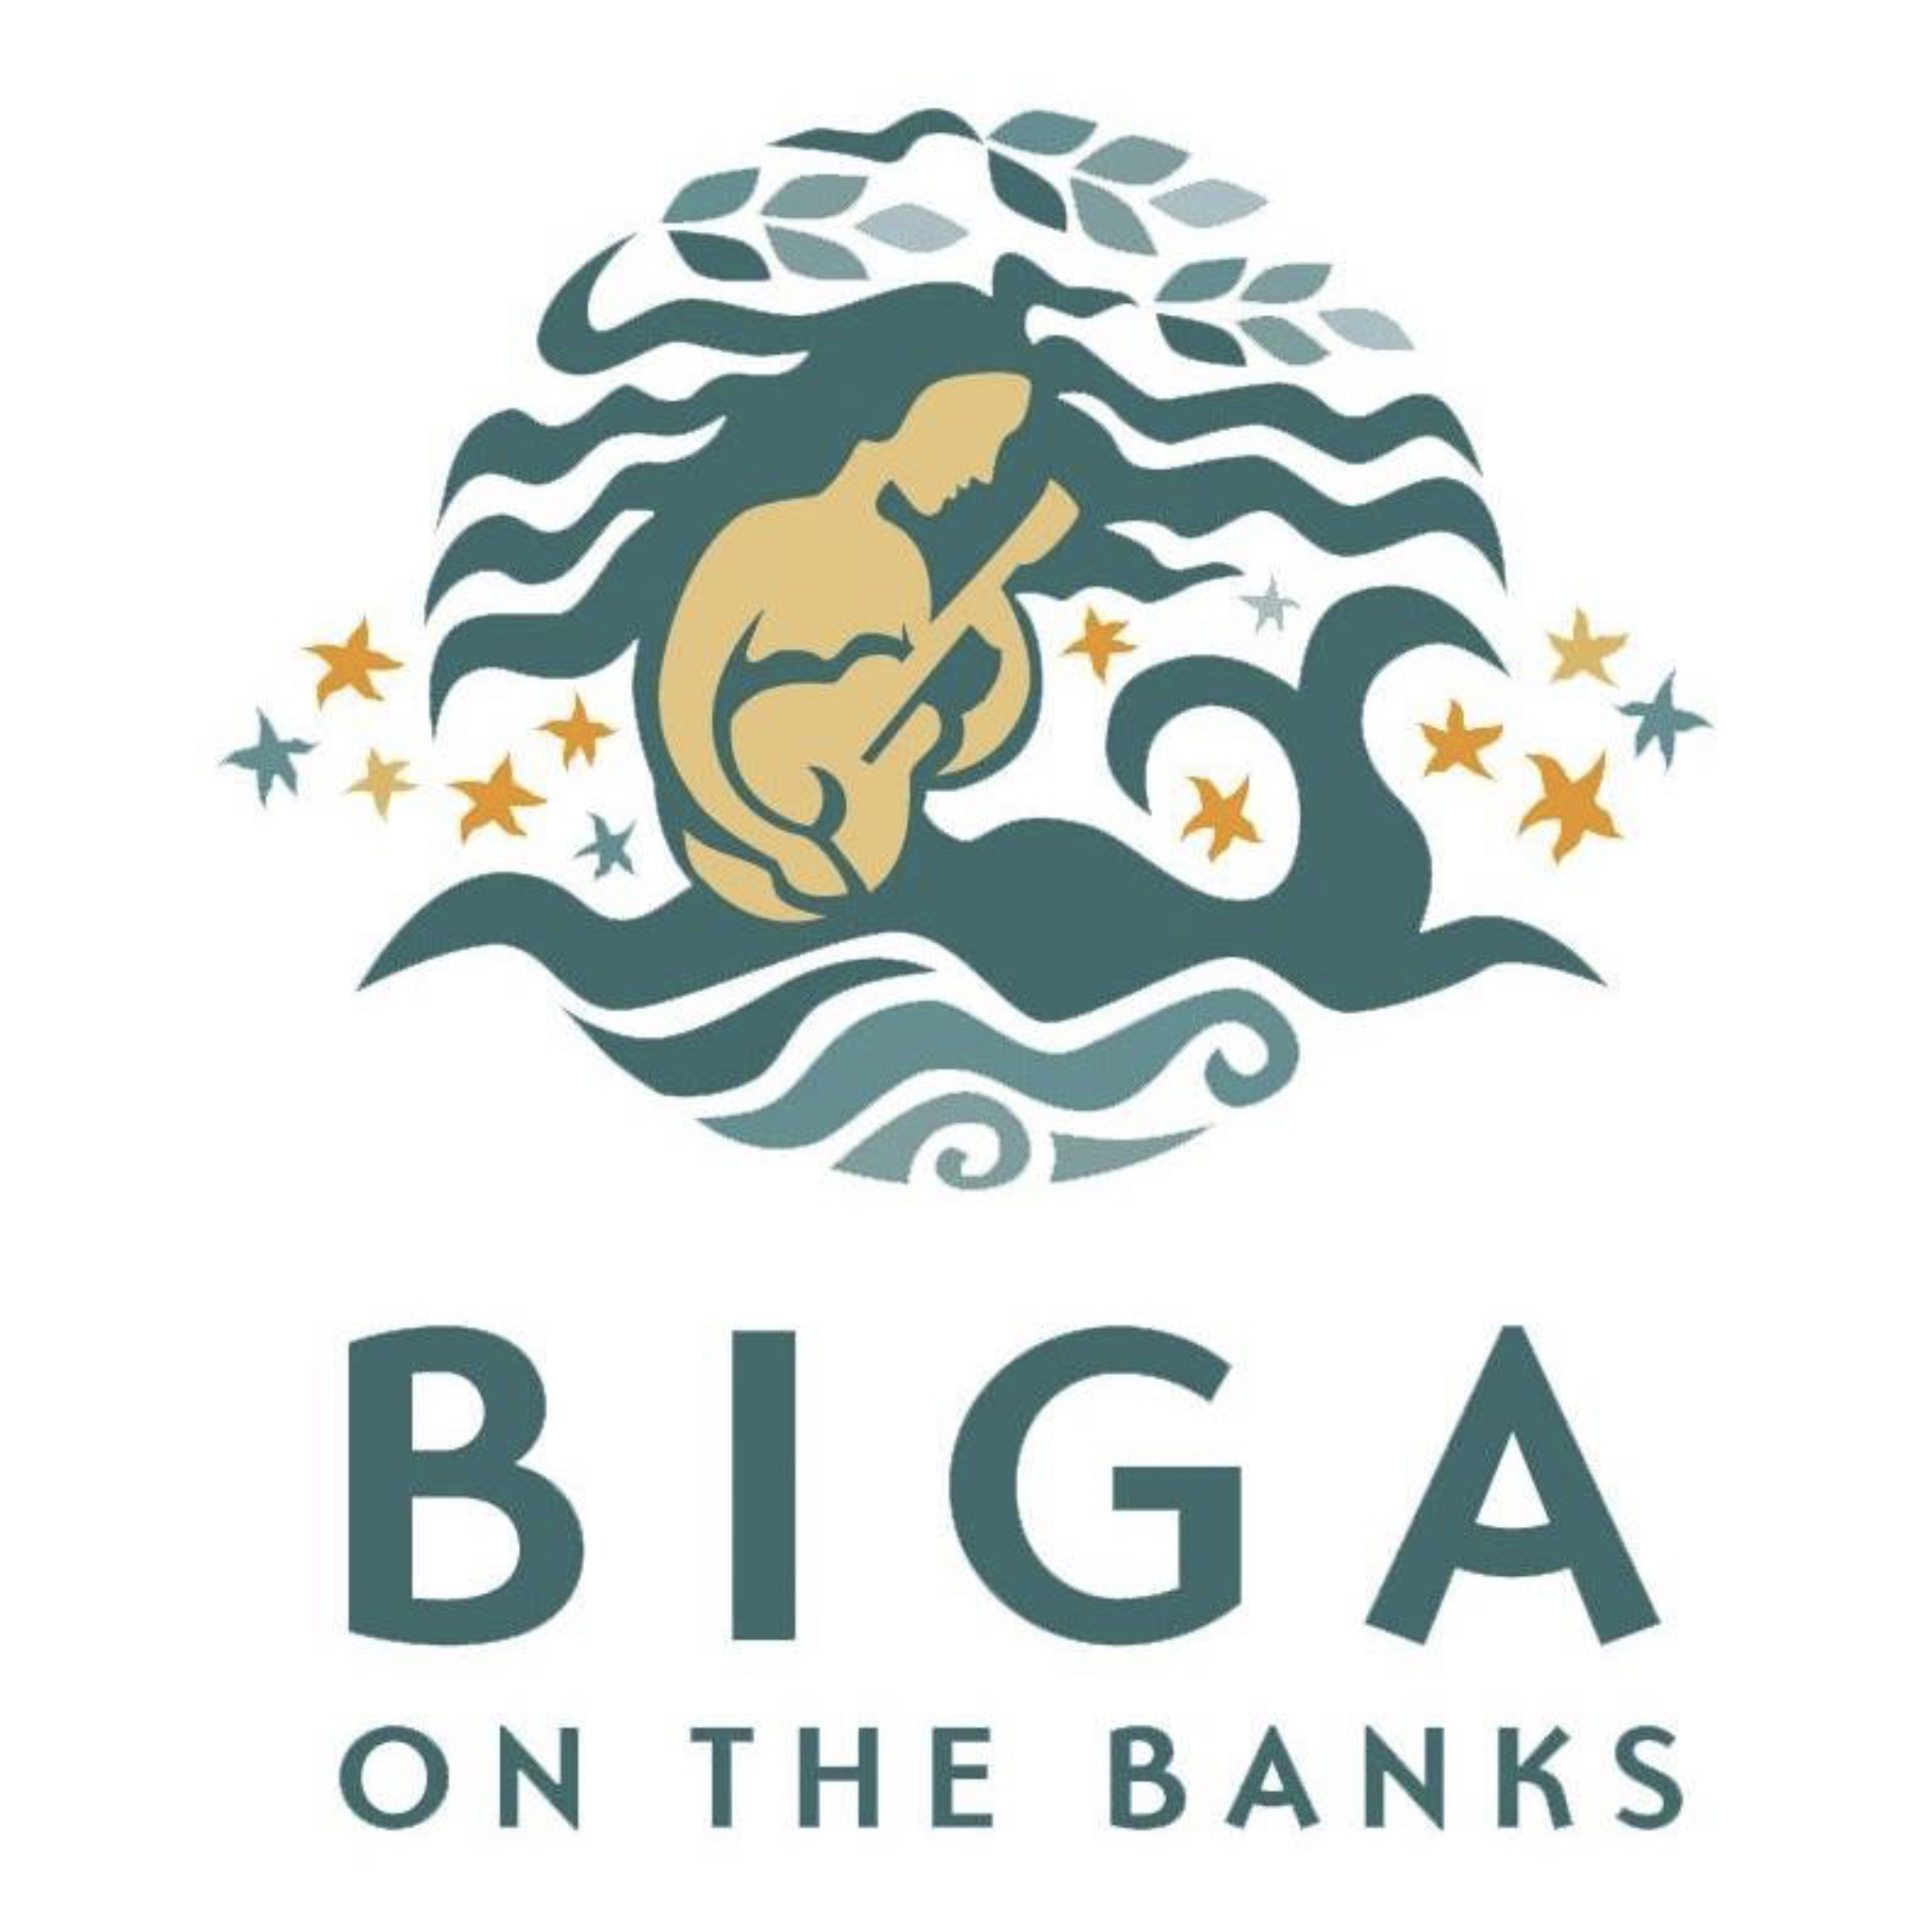 Biga on the Banks , Dinner  203 S St. Mary's Suite #100, San Antonio, 78205  P 210-225-0722    Biga on the Banks' Dinner Menu      Make a Reservation on OpenTable